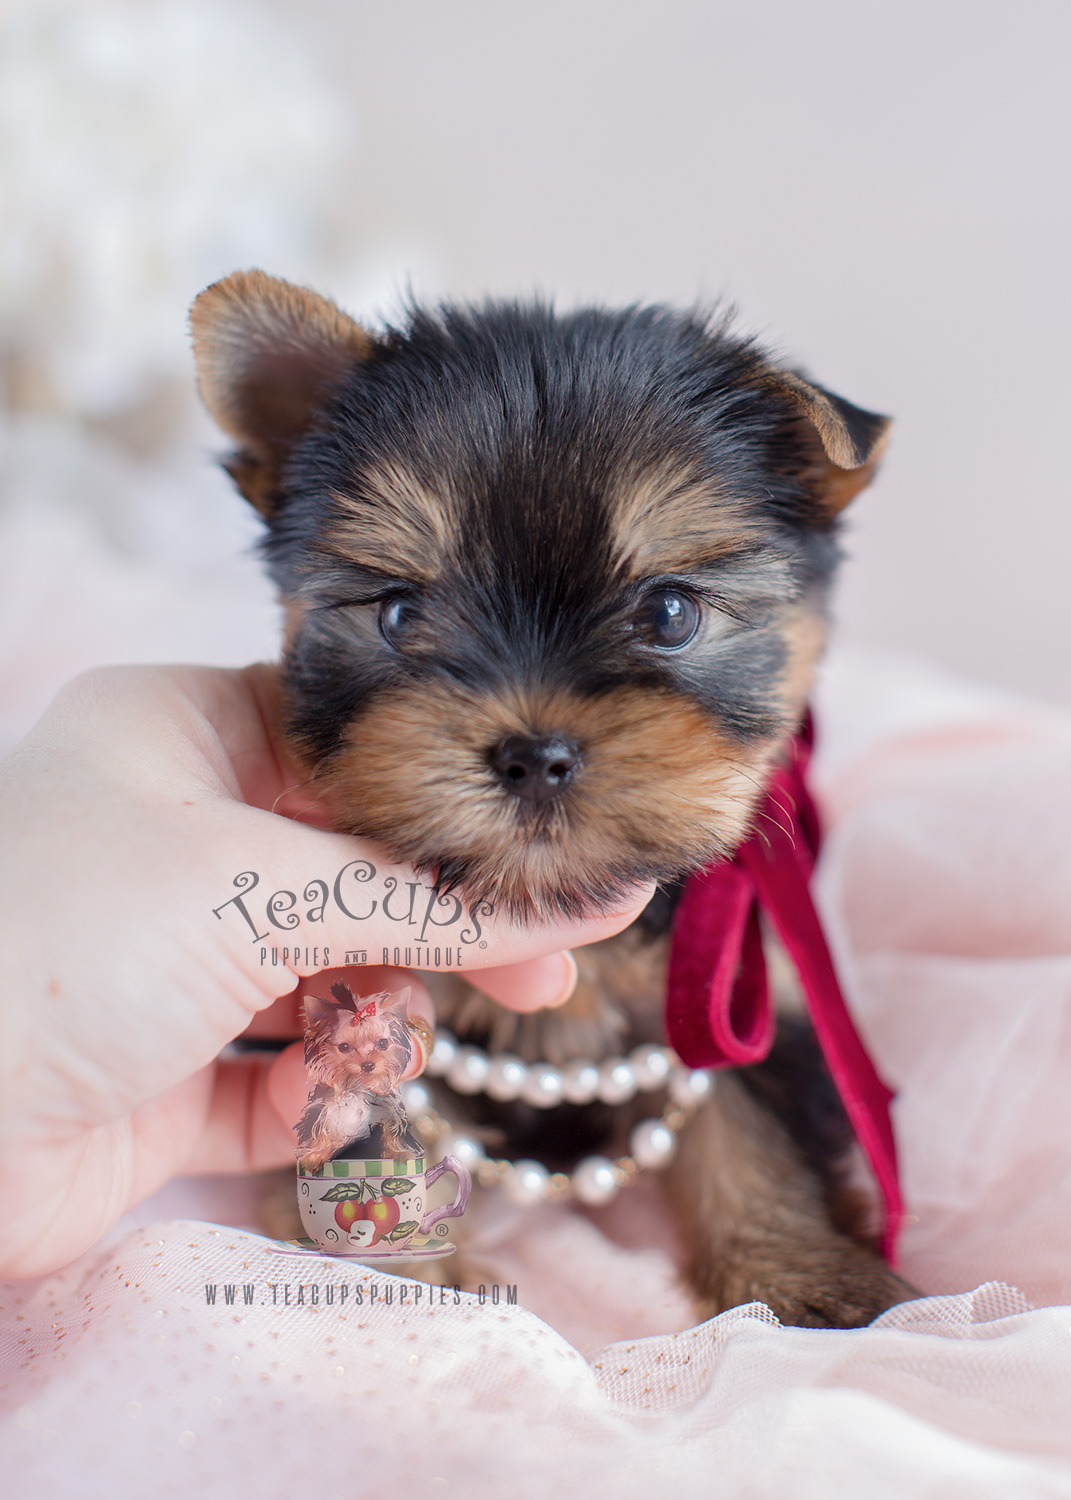 Teacup Yorkies and Yorkie Puppies For Sale